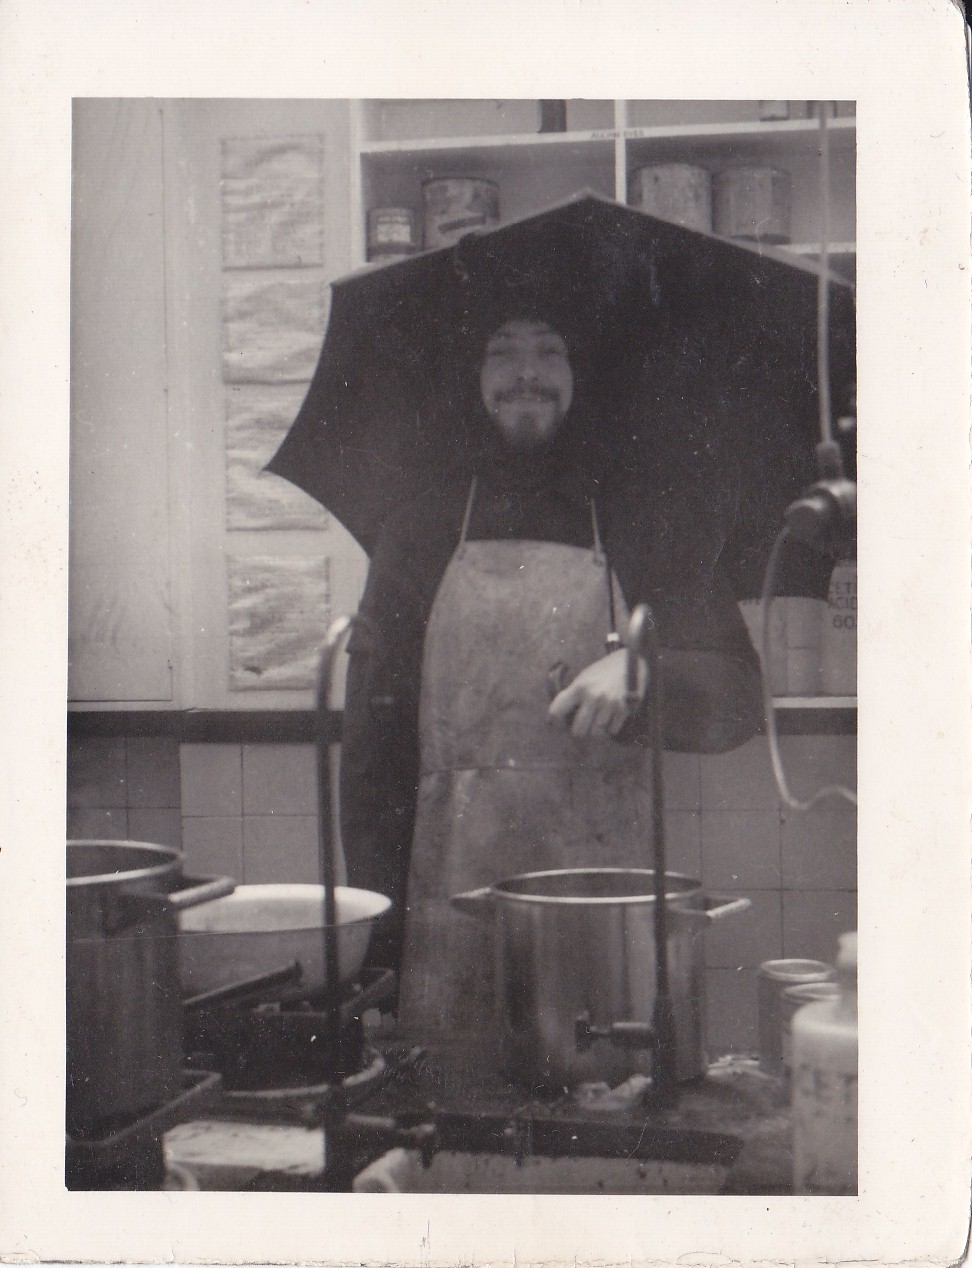 Tom Parsons, Camberwell School of Arts and Crafts - early 1960's